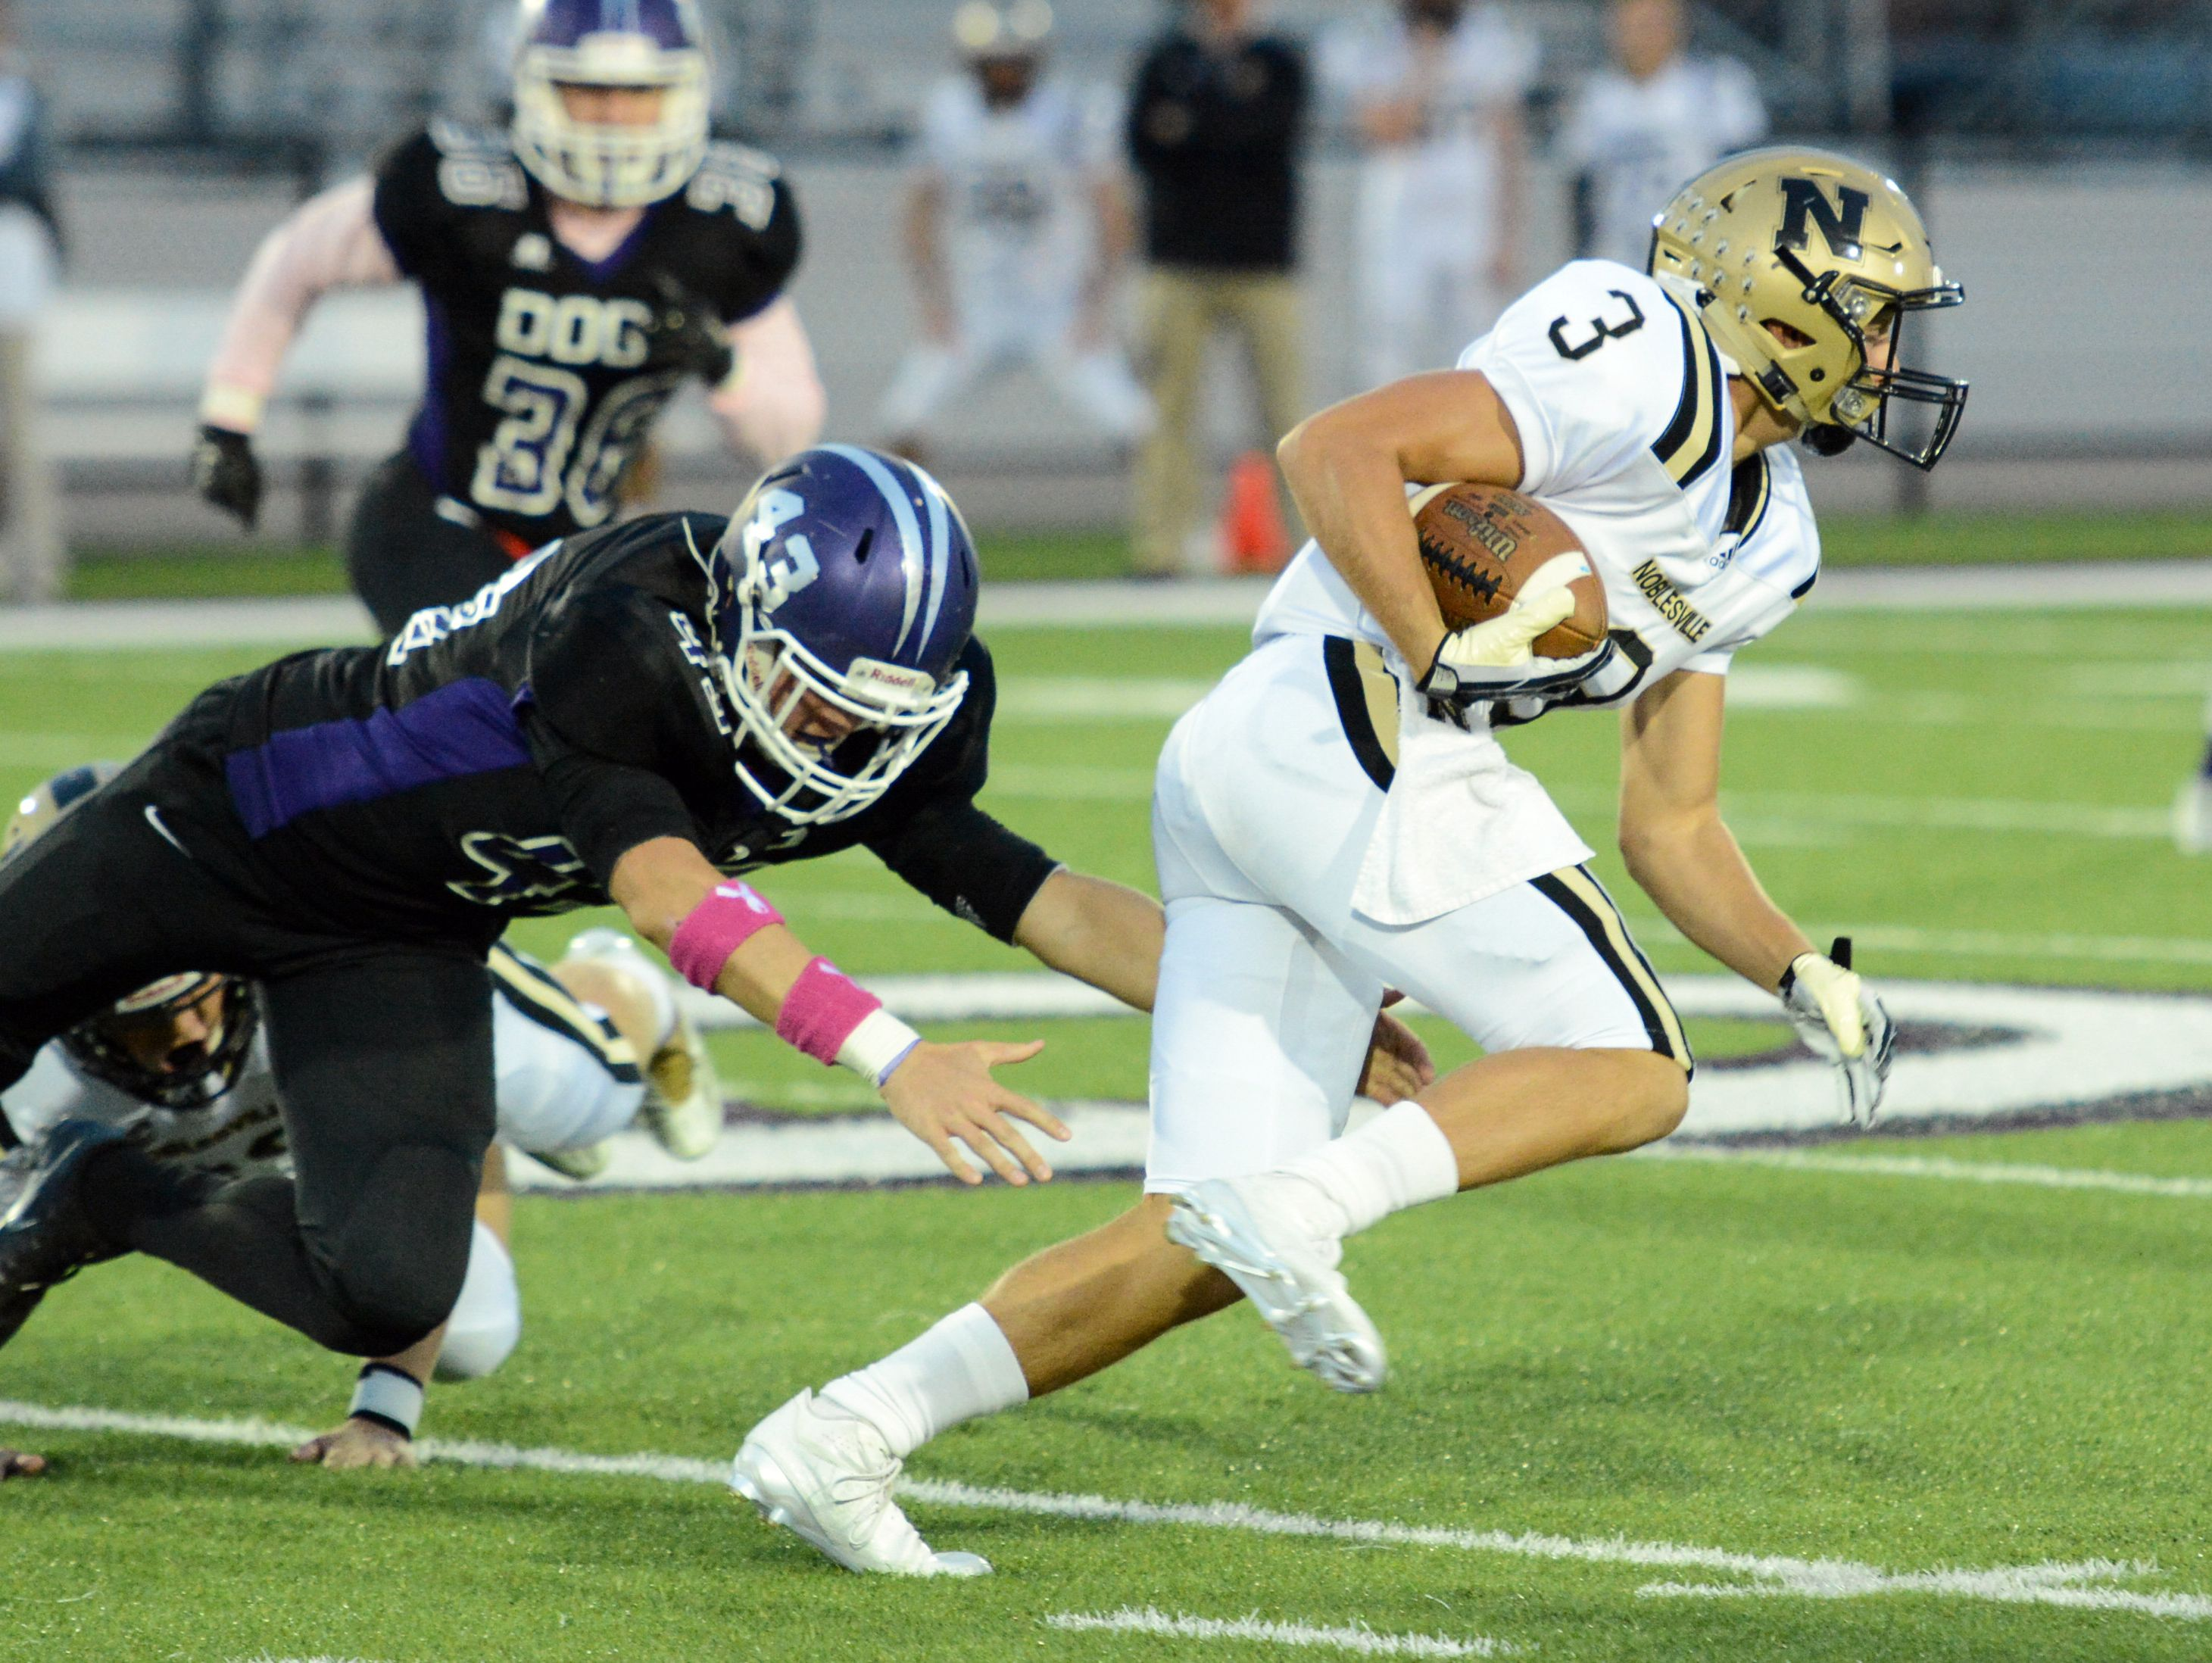 Noblesville's Nick Rusie eludes a Brownsburg defender during the Millers' 22-21 win Friday night.